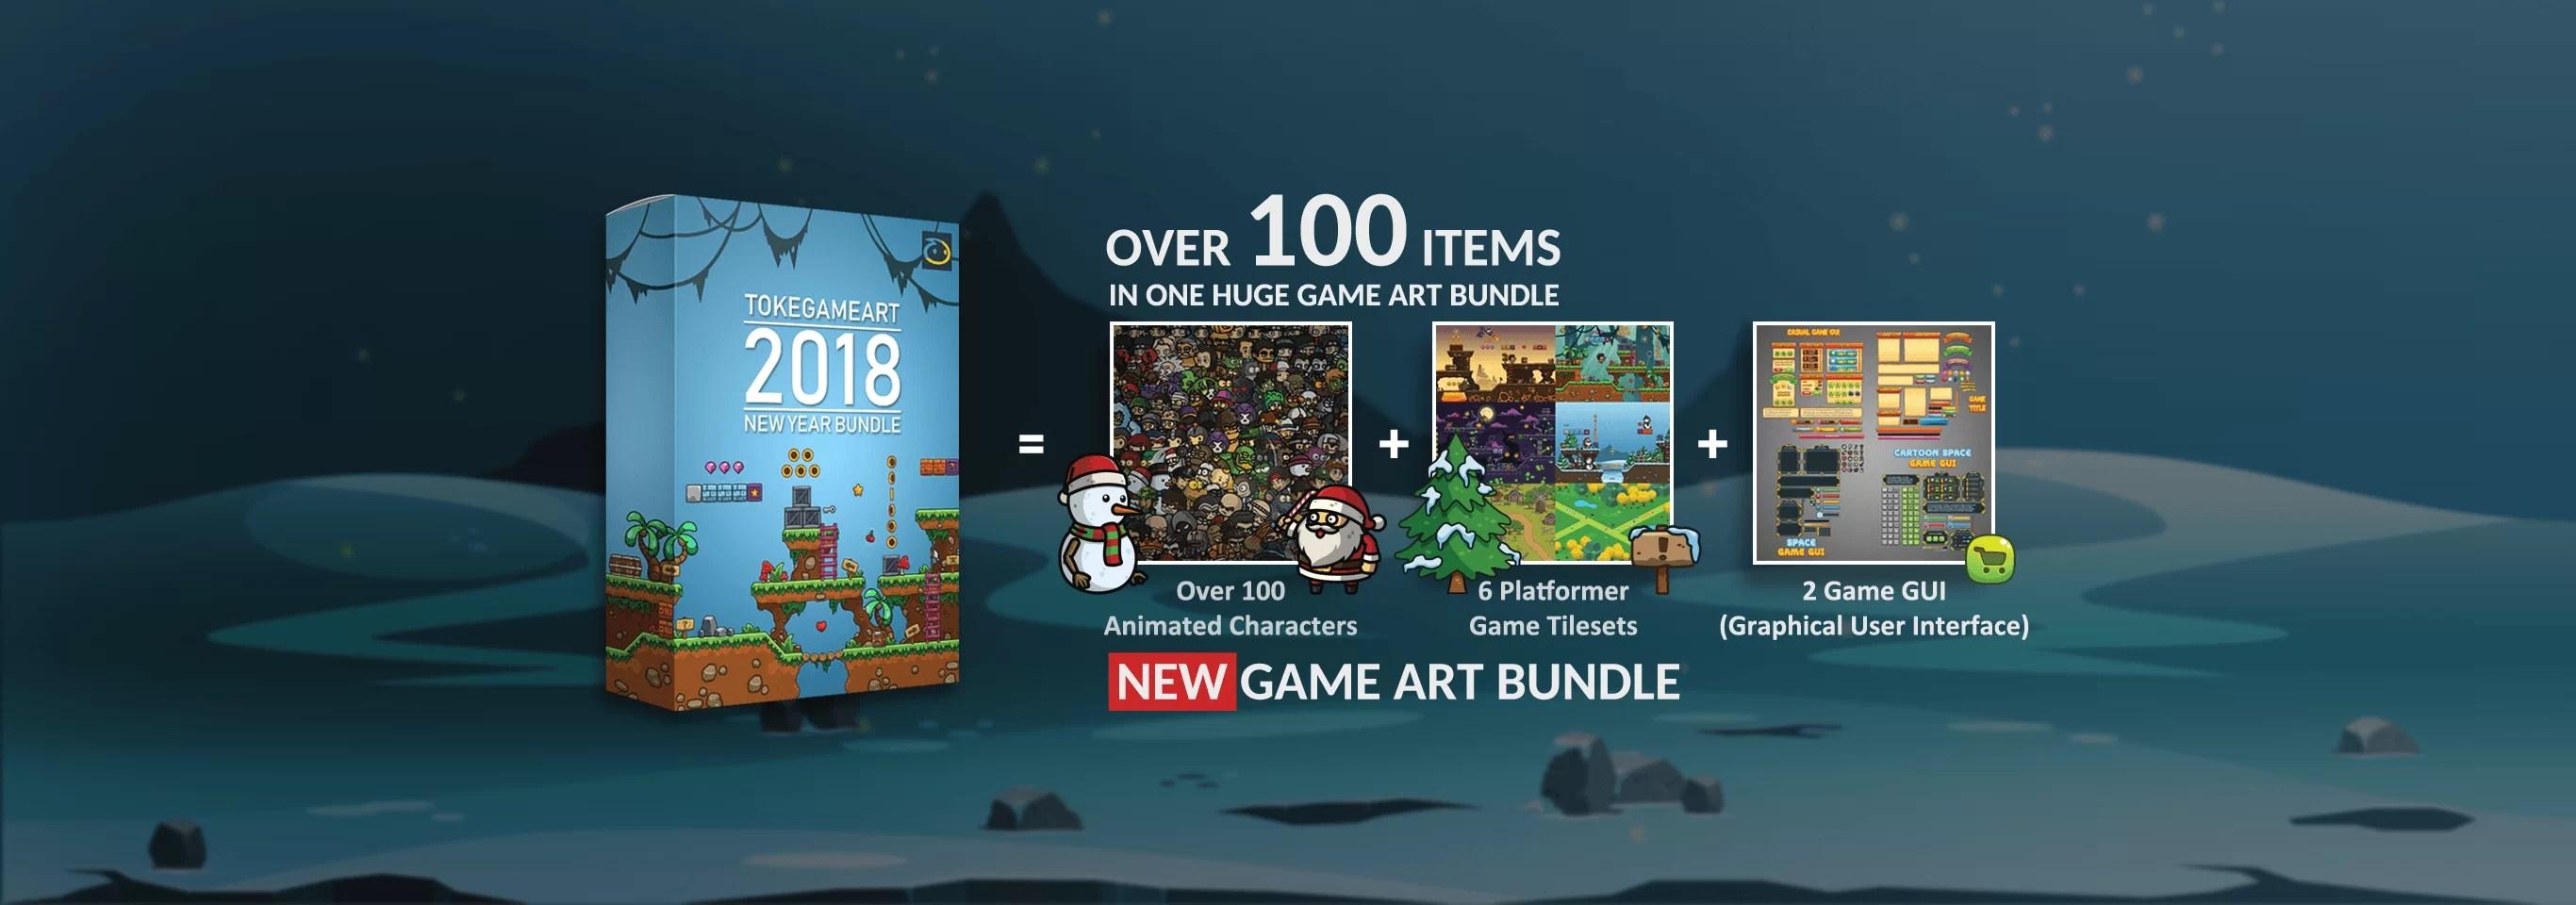 TokeGameArt 2018 New Year Bundle - Over 100 items in one huge bundle